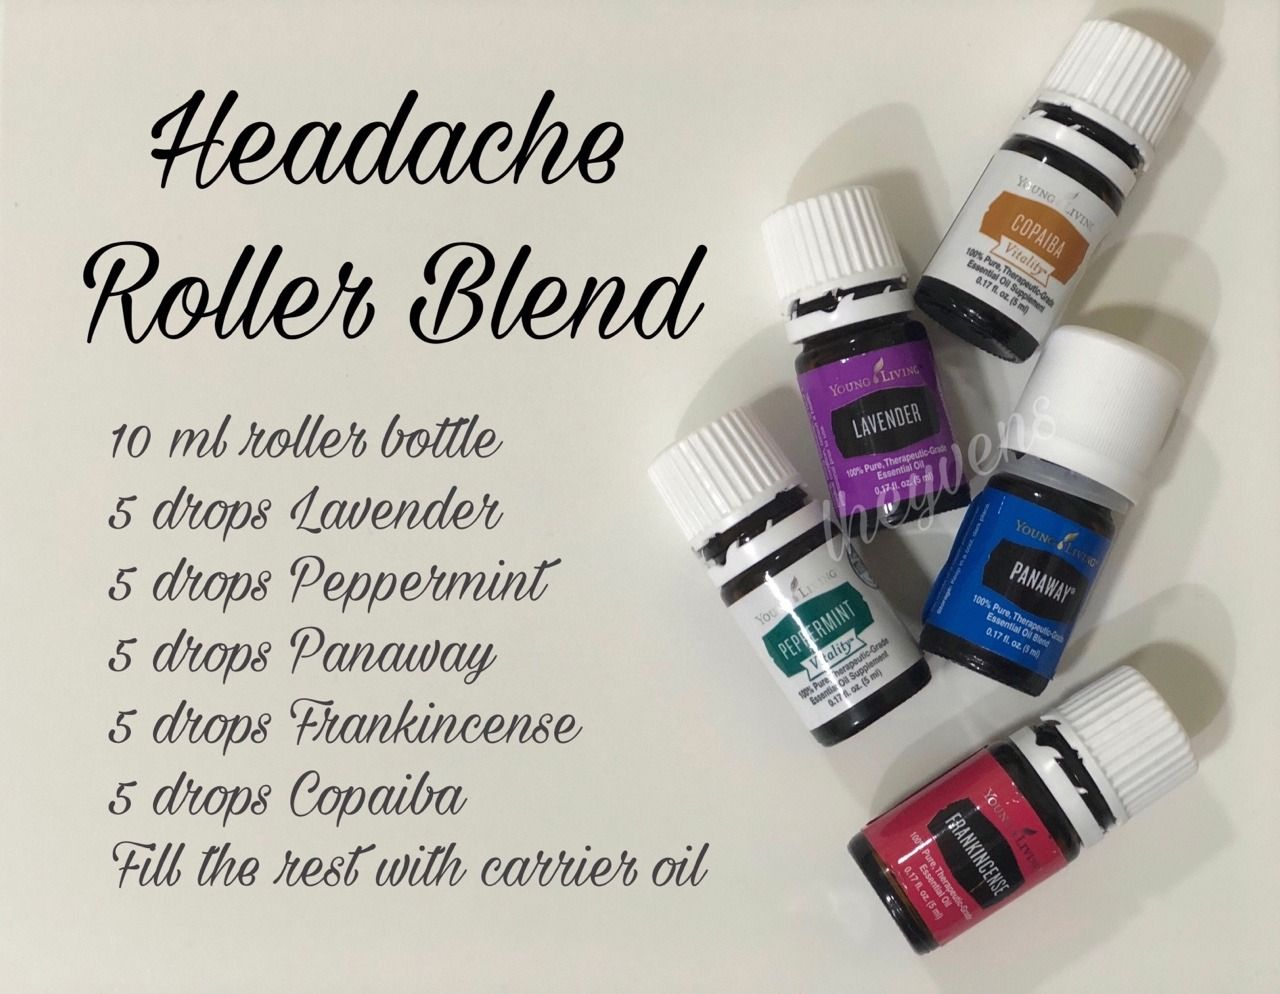 Here S One Alternative Roller Blend Recipe For Headaches All Ess Essential Oils For Migraines Essential Oil Roller Bottle Recipes Essential Oil Blends Recipes